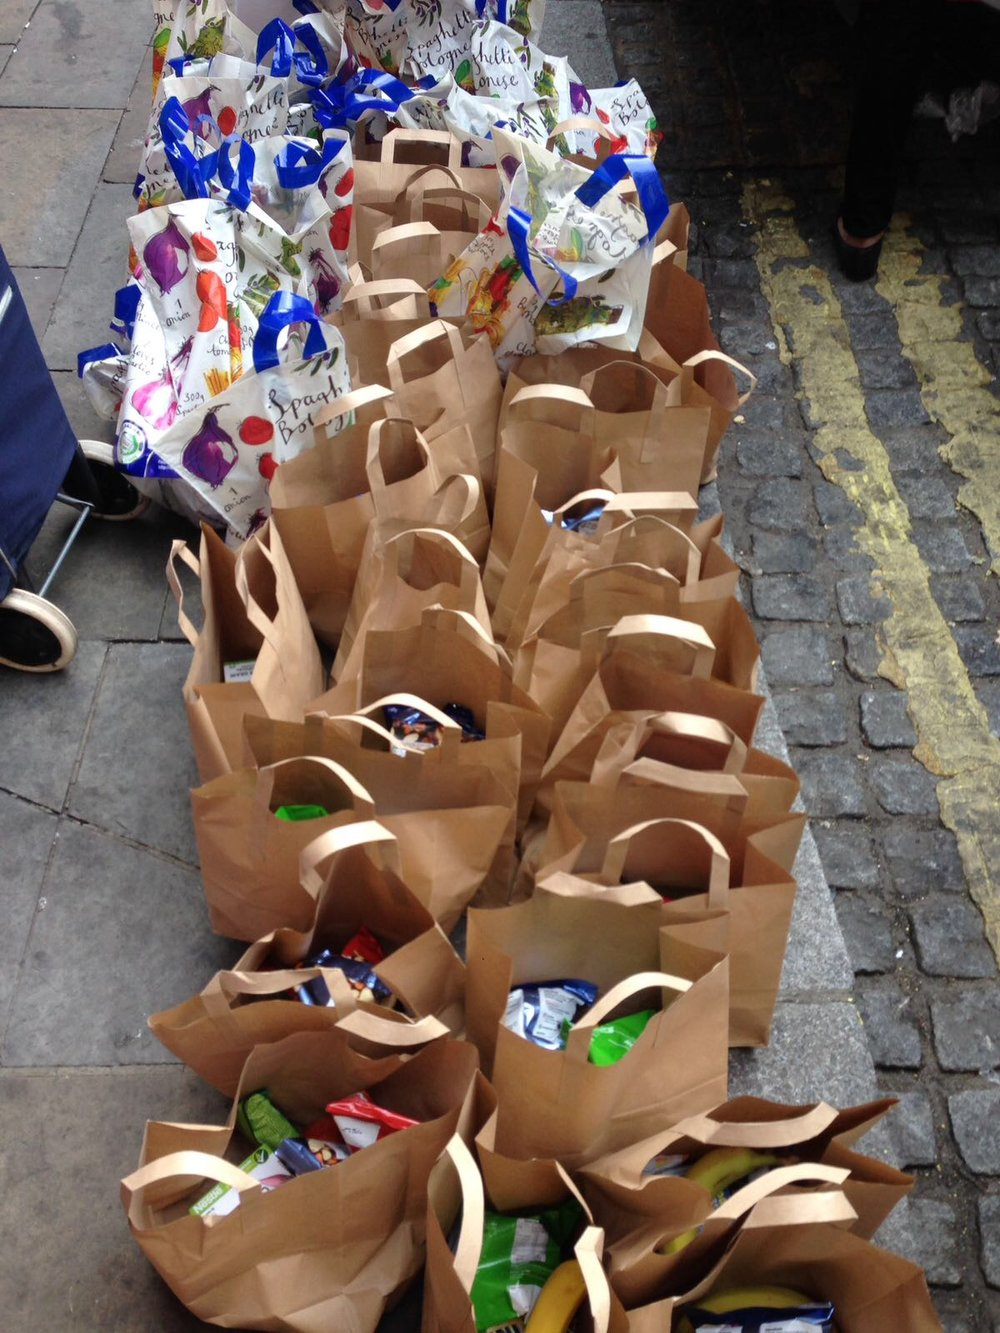 Packets of food, toiletries ready to be distributed.